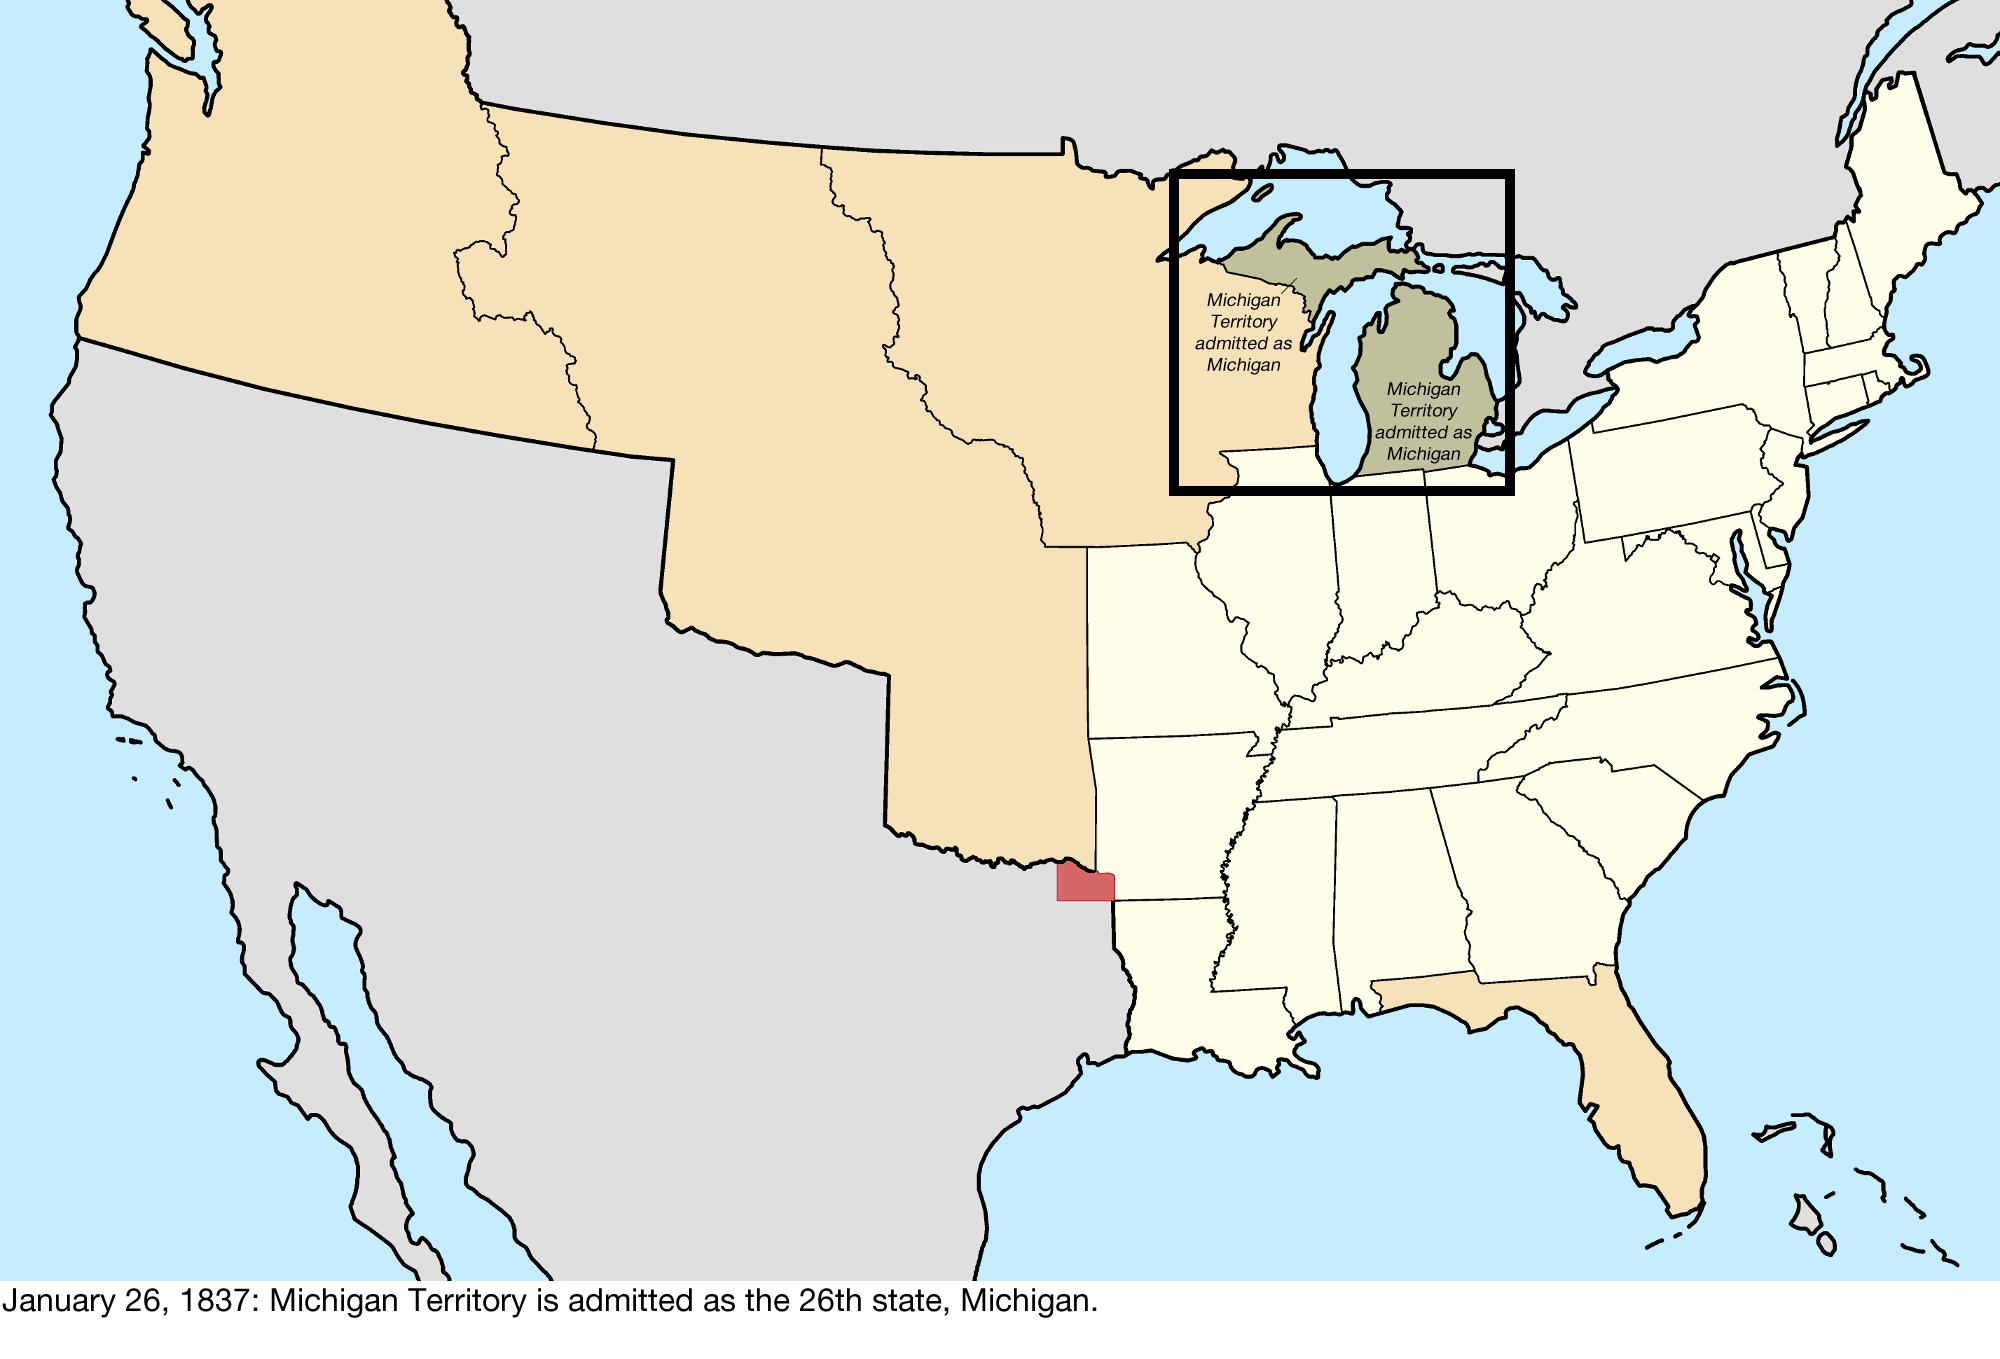 Territorial evolution of the United States - Wikipedia